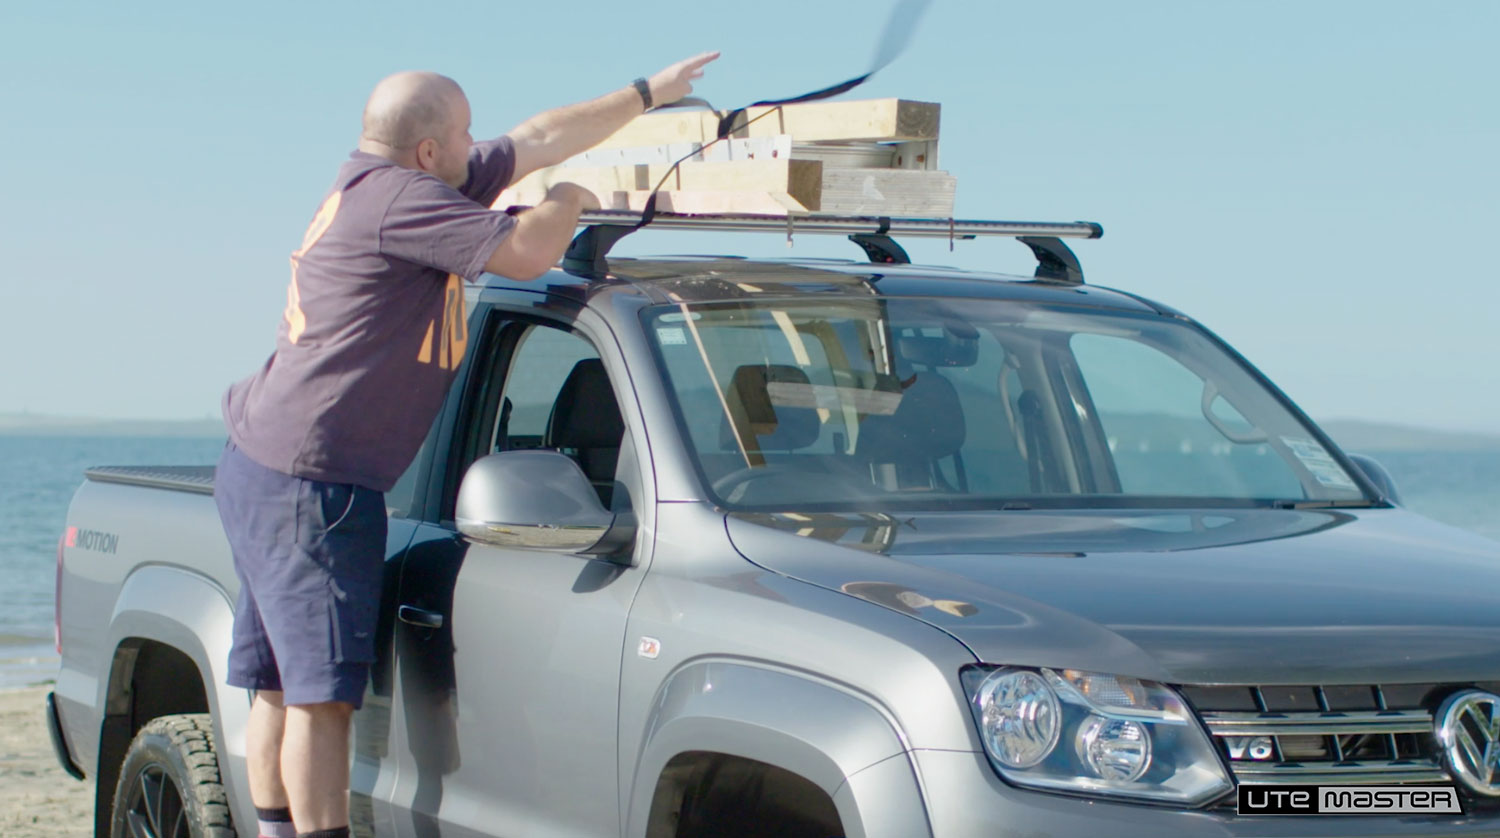 Insecure Roof Rack Load  Dropracks by Utemaster Roof Racks Lowerable Roof Access